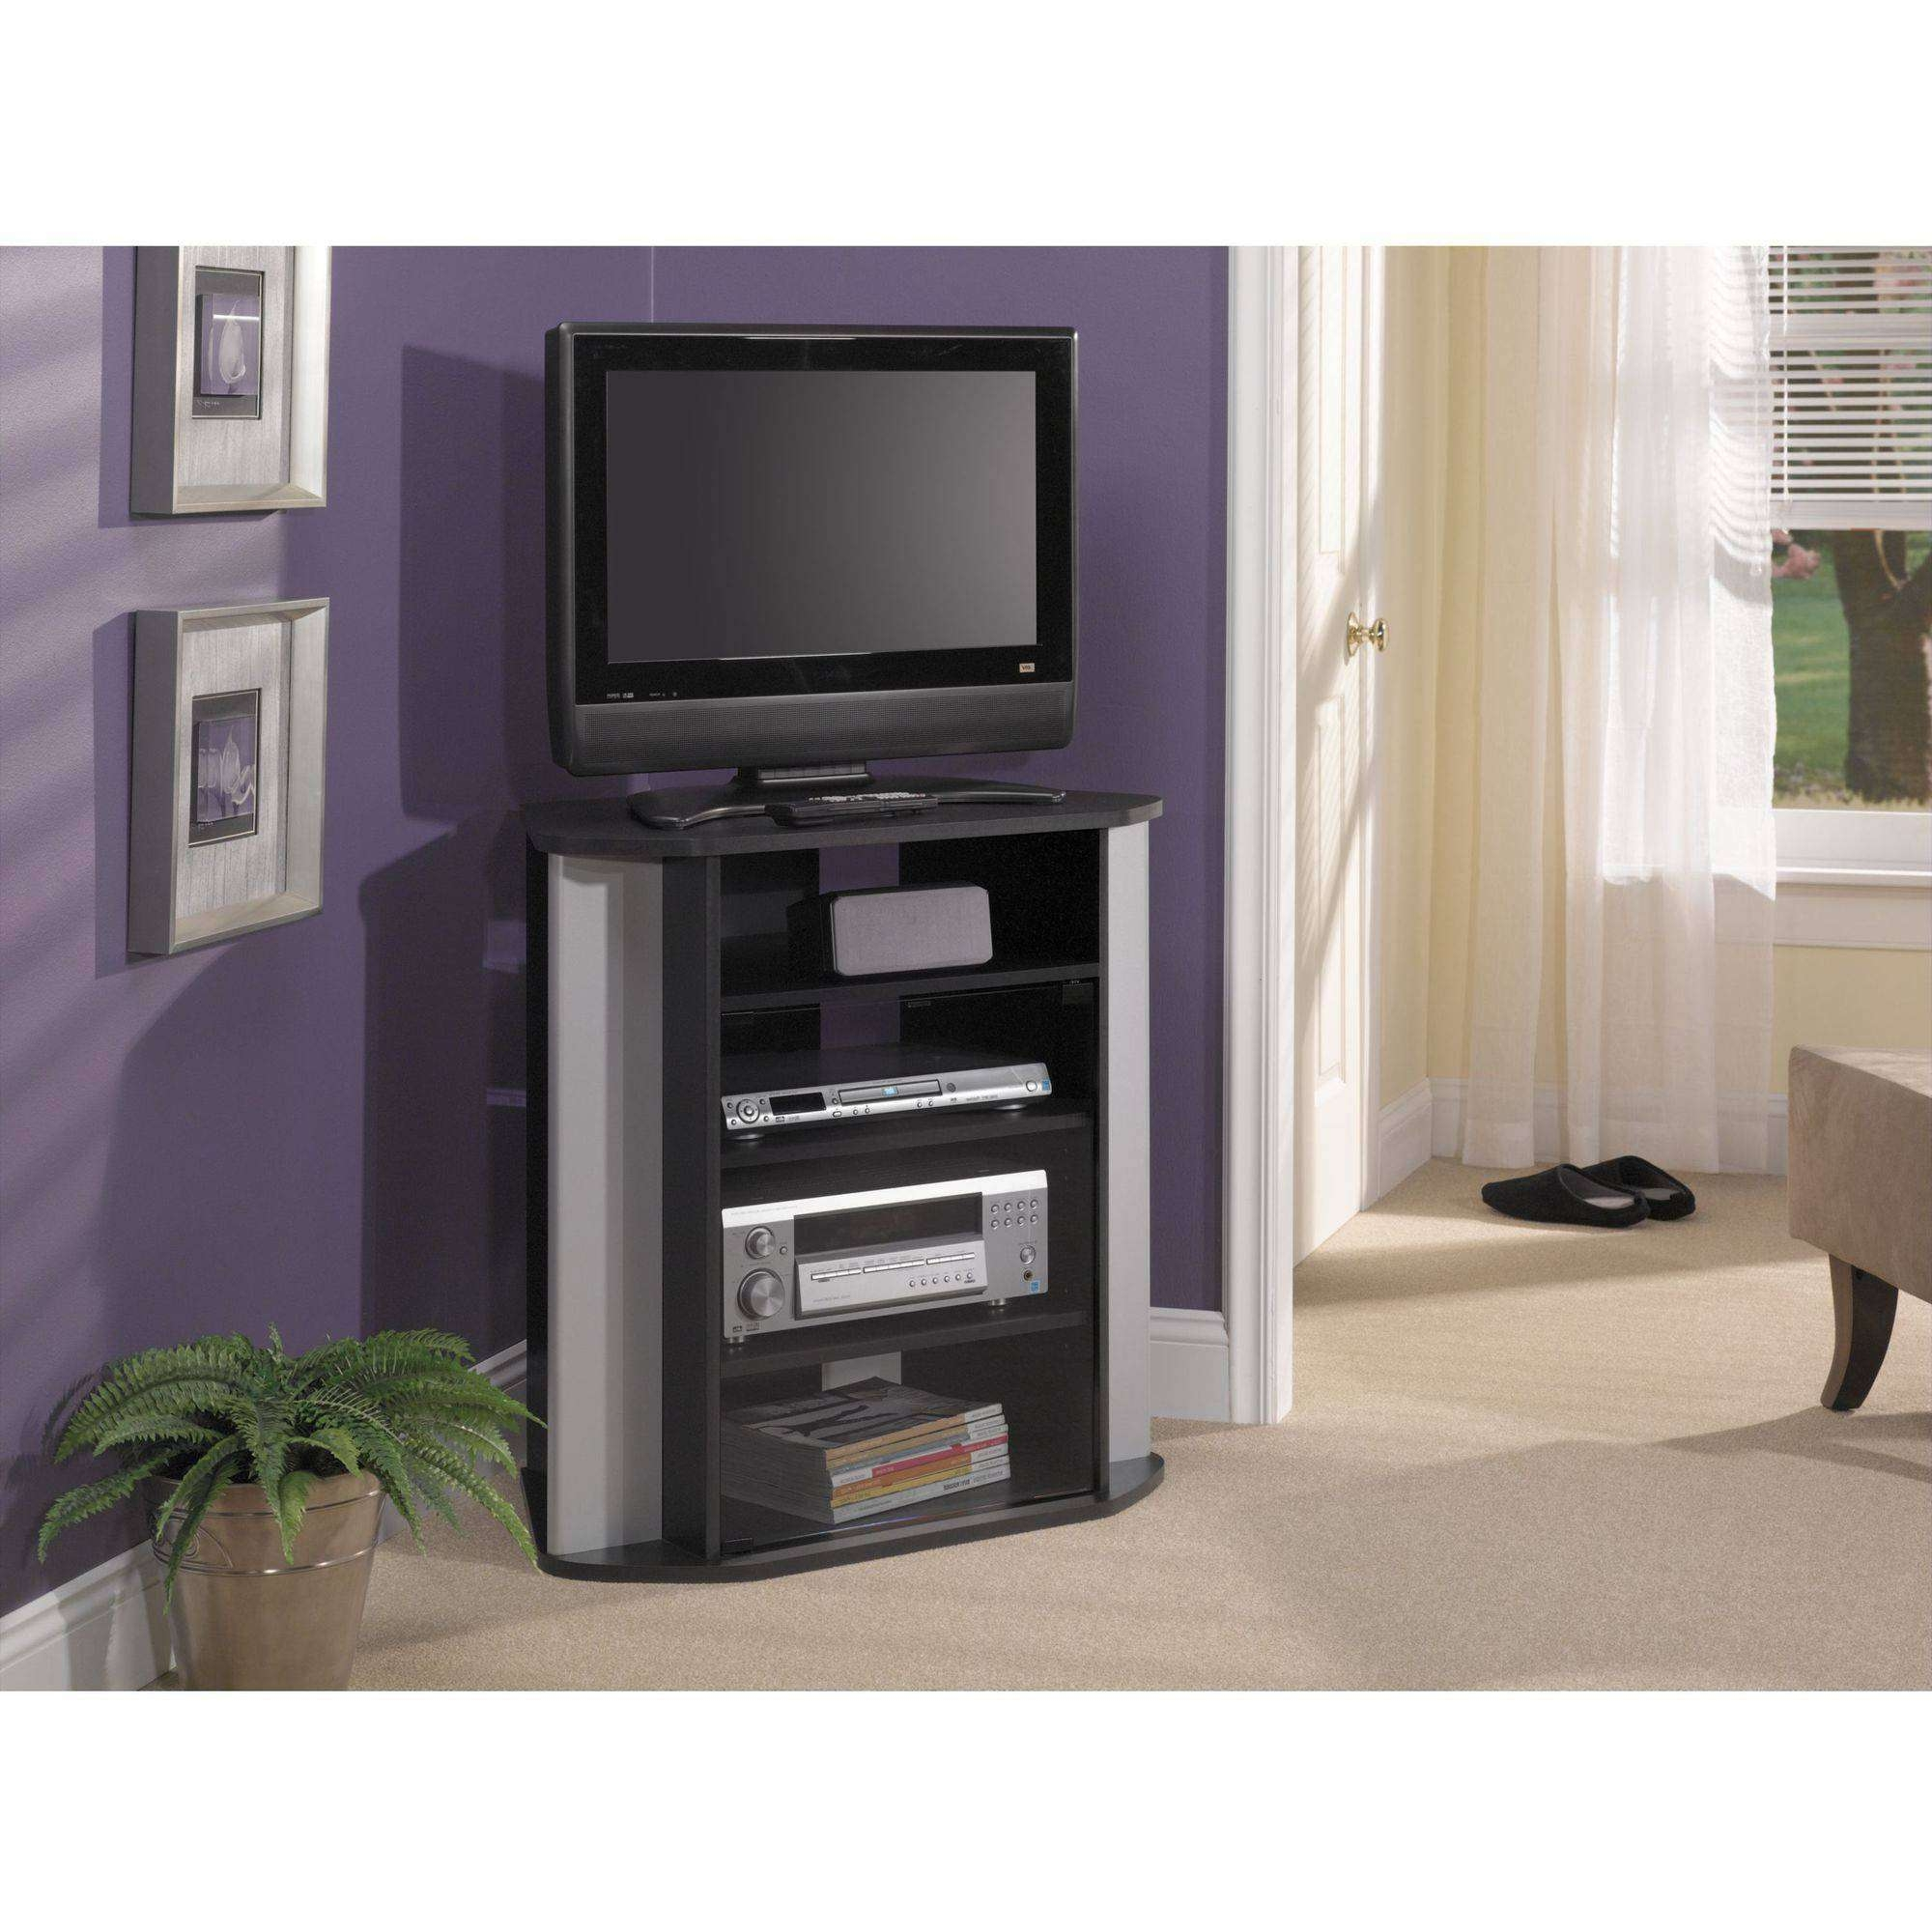 Bush Visions Black Tall Corner Tv Stand, For Tvs Up To 37 Inside Silver Corner Tv Stands (View 7 of 15)